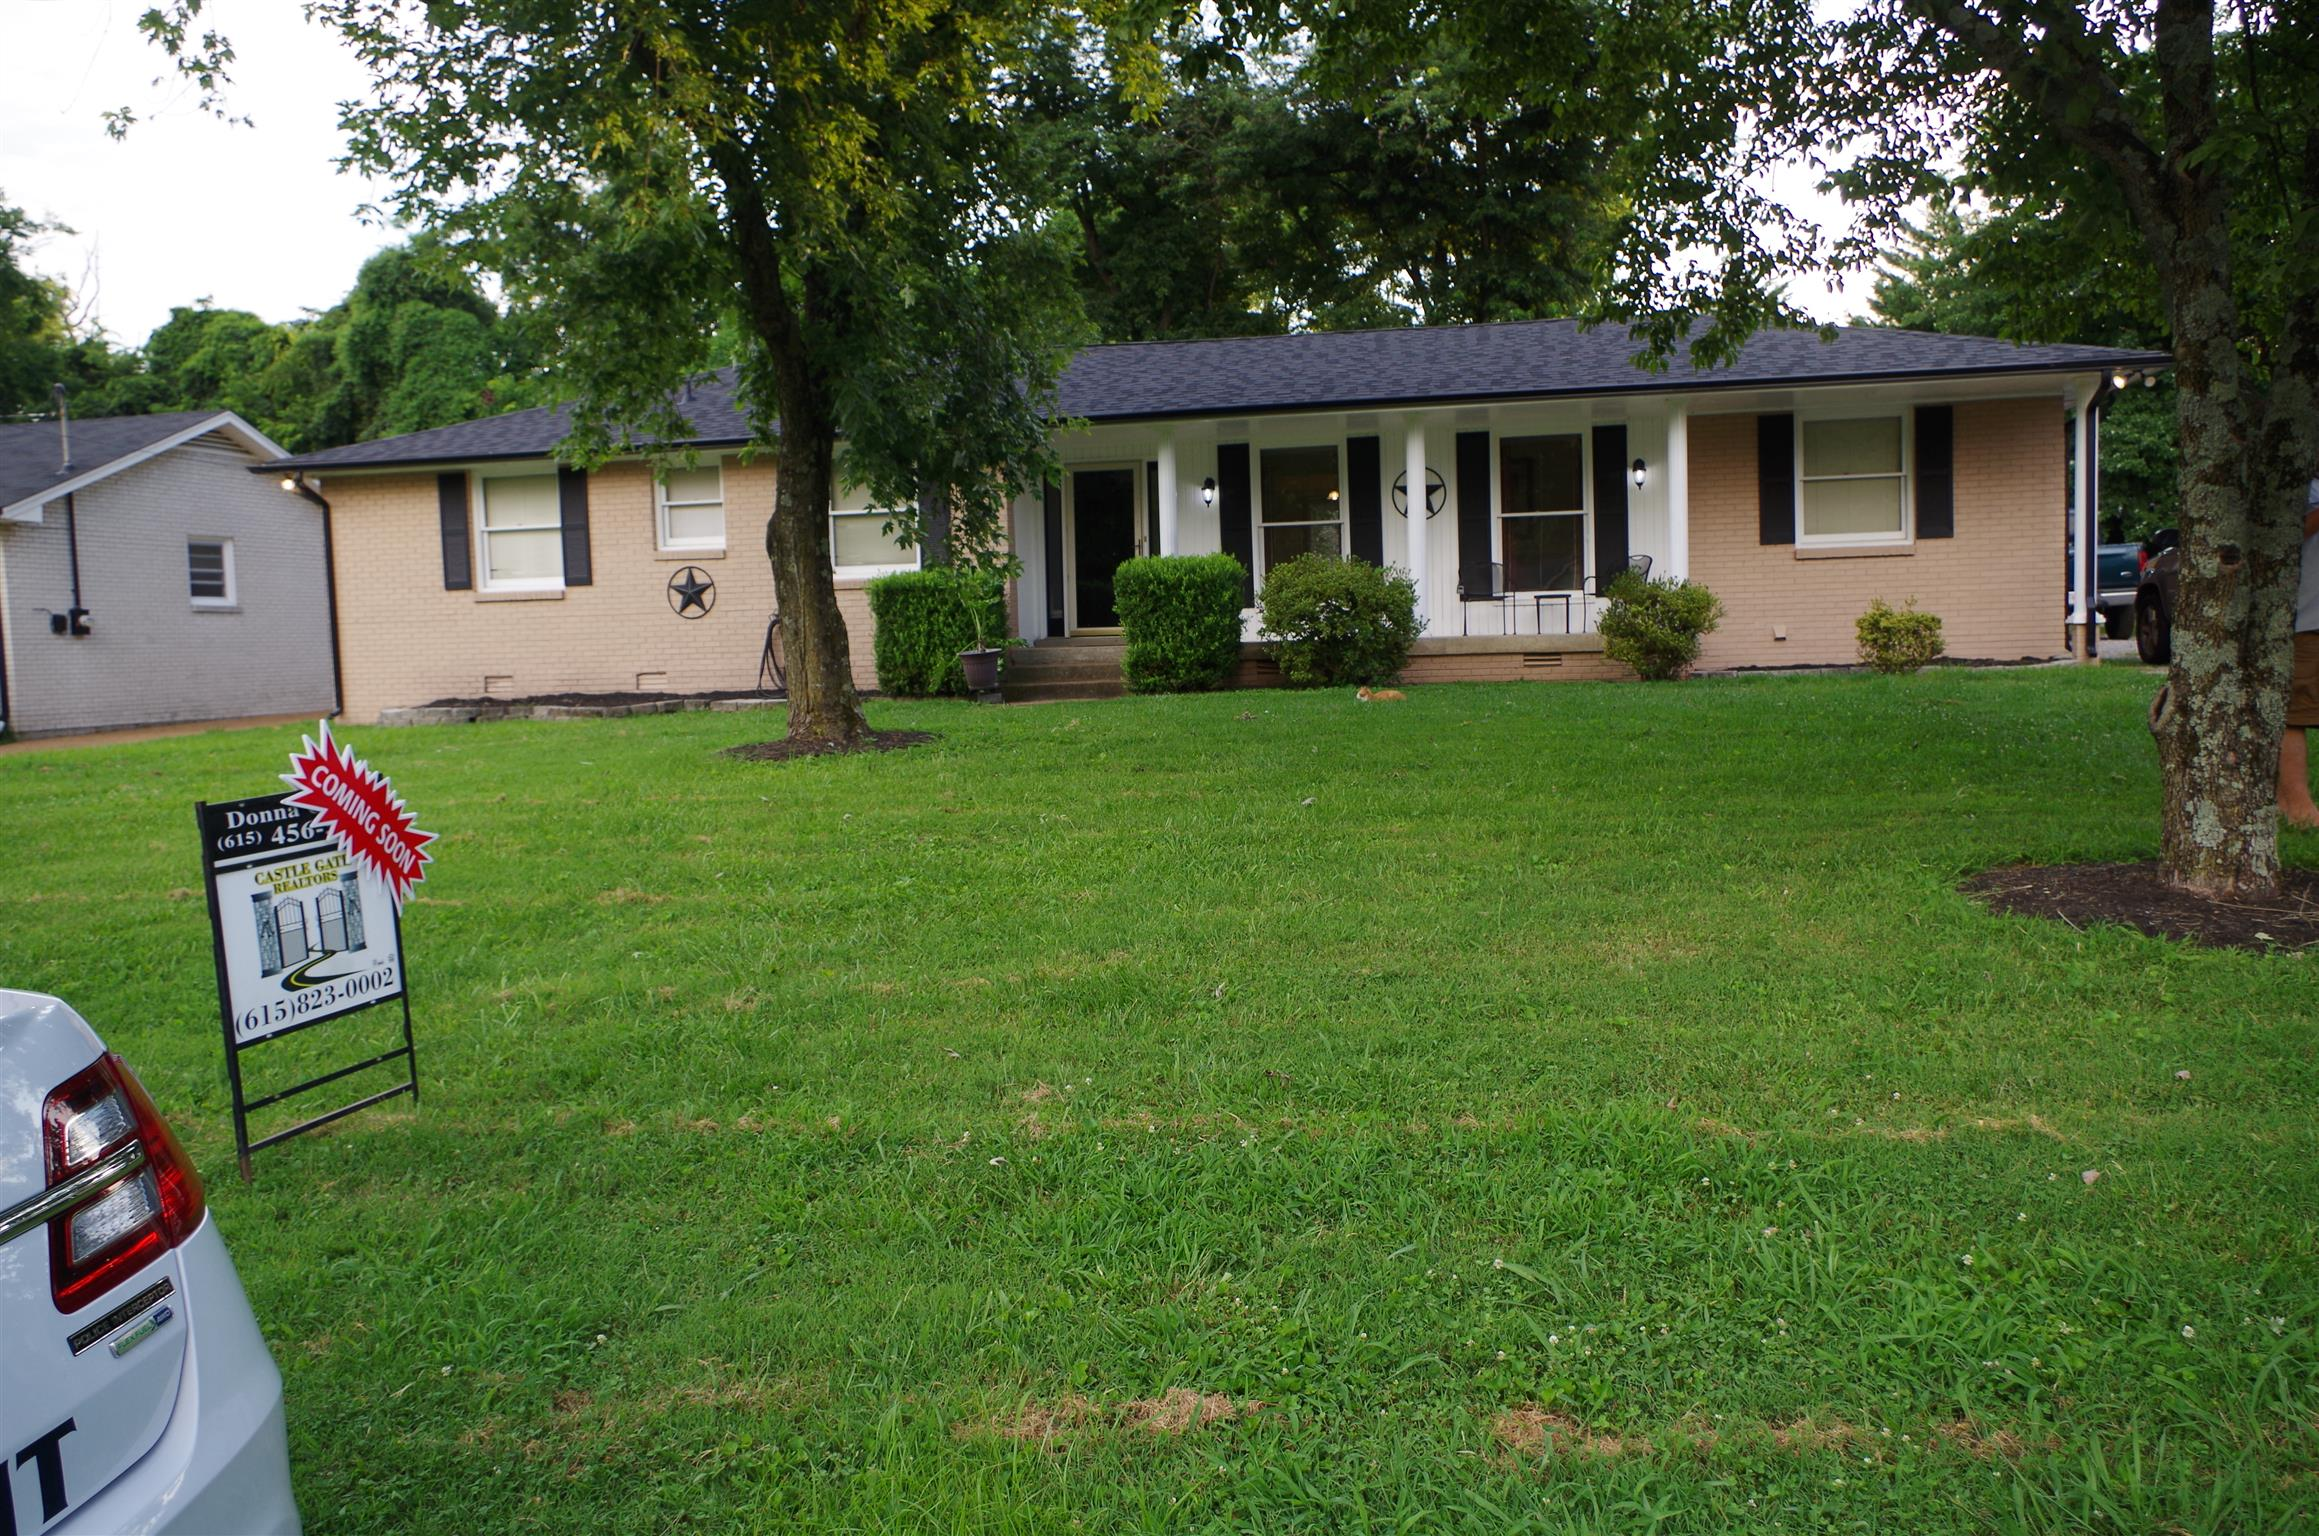 4840 Cascade Dr, Old Hickory, TN 37138 - Old Hickory, TN real estate listing